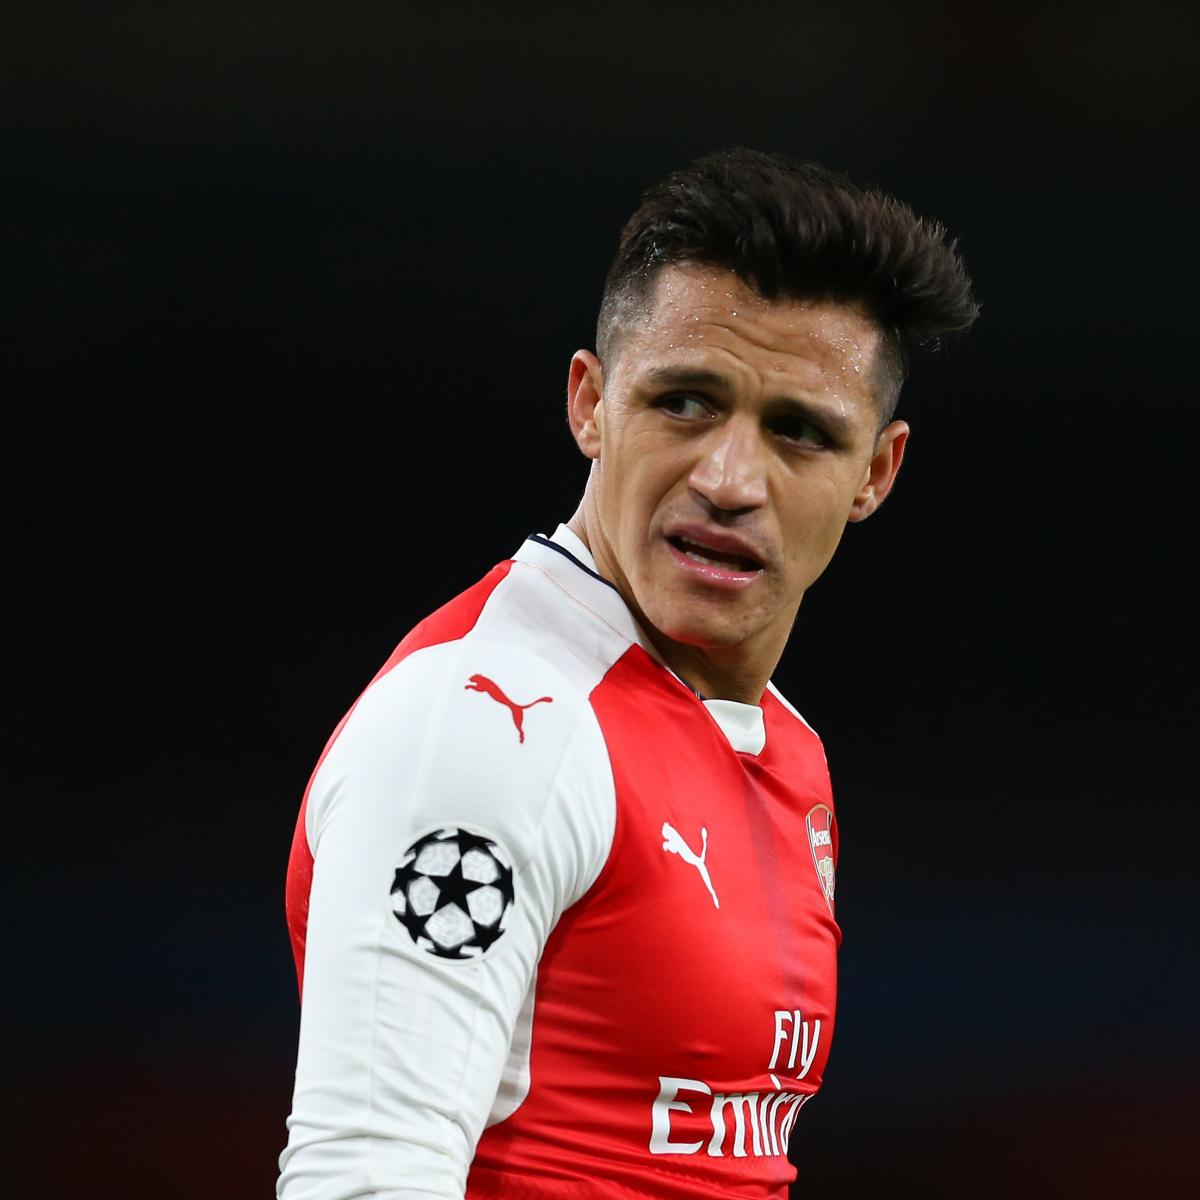 Manchester United Transfer News Latest Rumours On Lucas: Manchester United Transfer News: Latest Rumours On Alexis